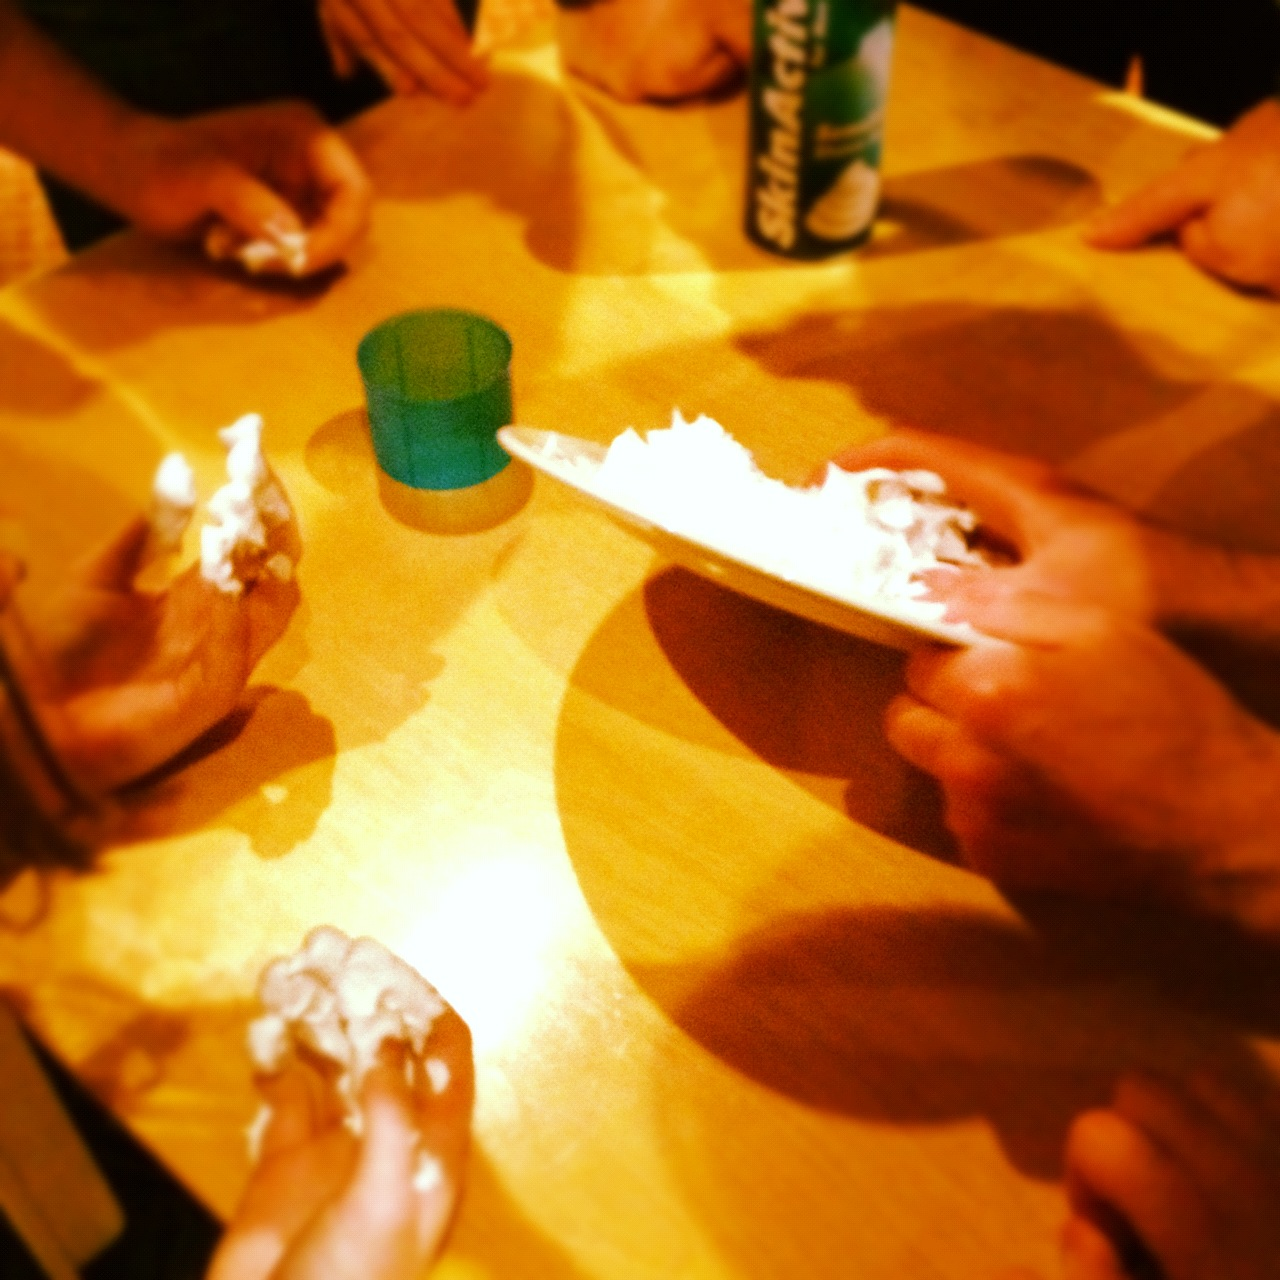 It took a lot of thought for team members to guess the objects made out of shaving foam.